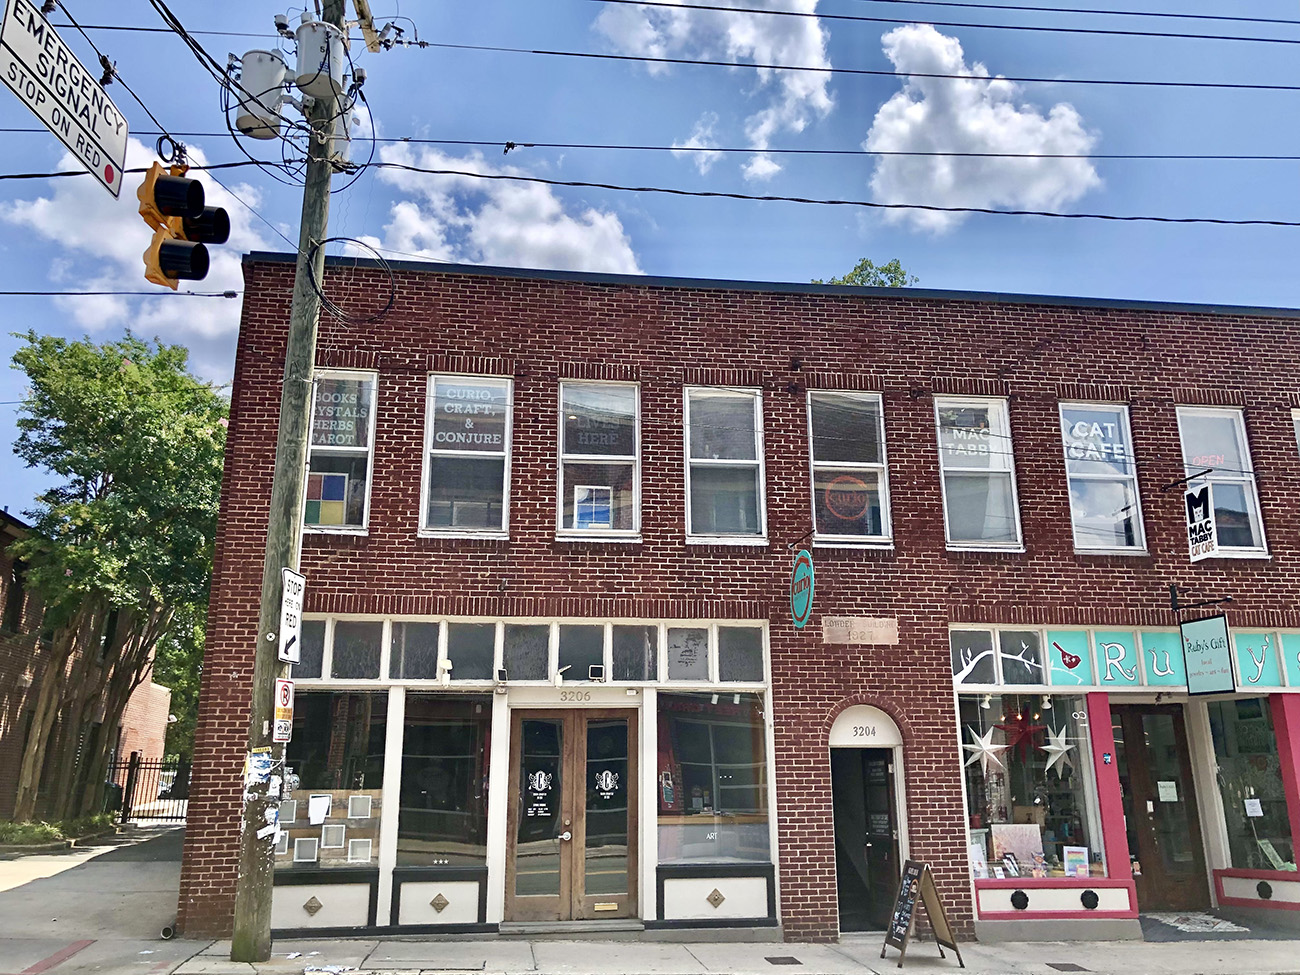 A new wine bar in NoDa hopes to have a dive bar vibe